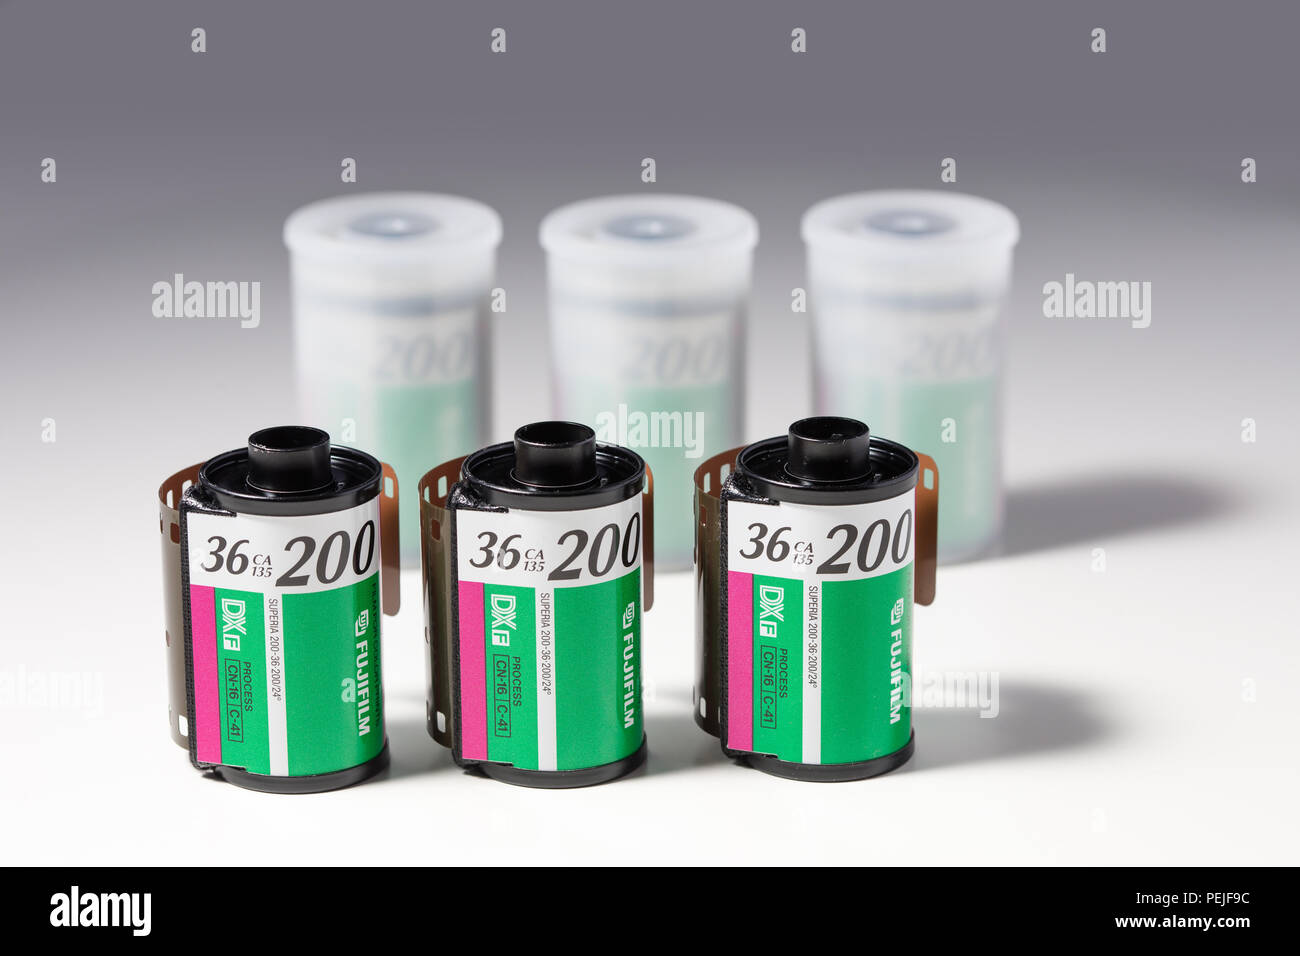 Rolls of Fujifilm Superia 200 35mm colour negative roll film in canisters - Stock Image